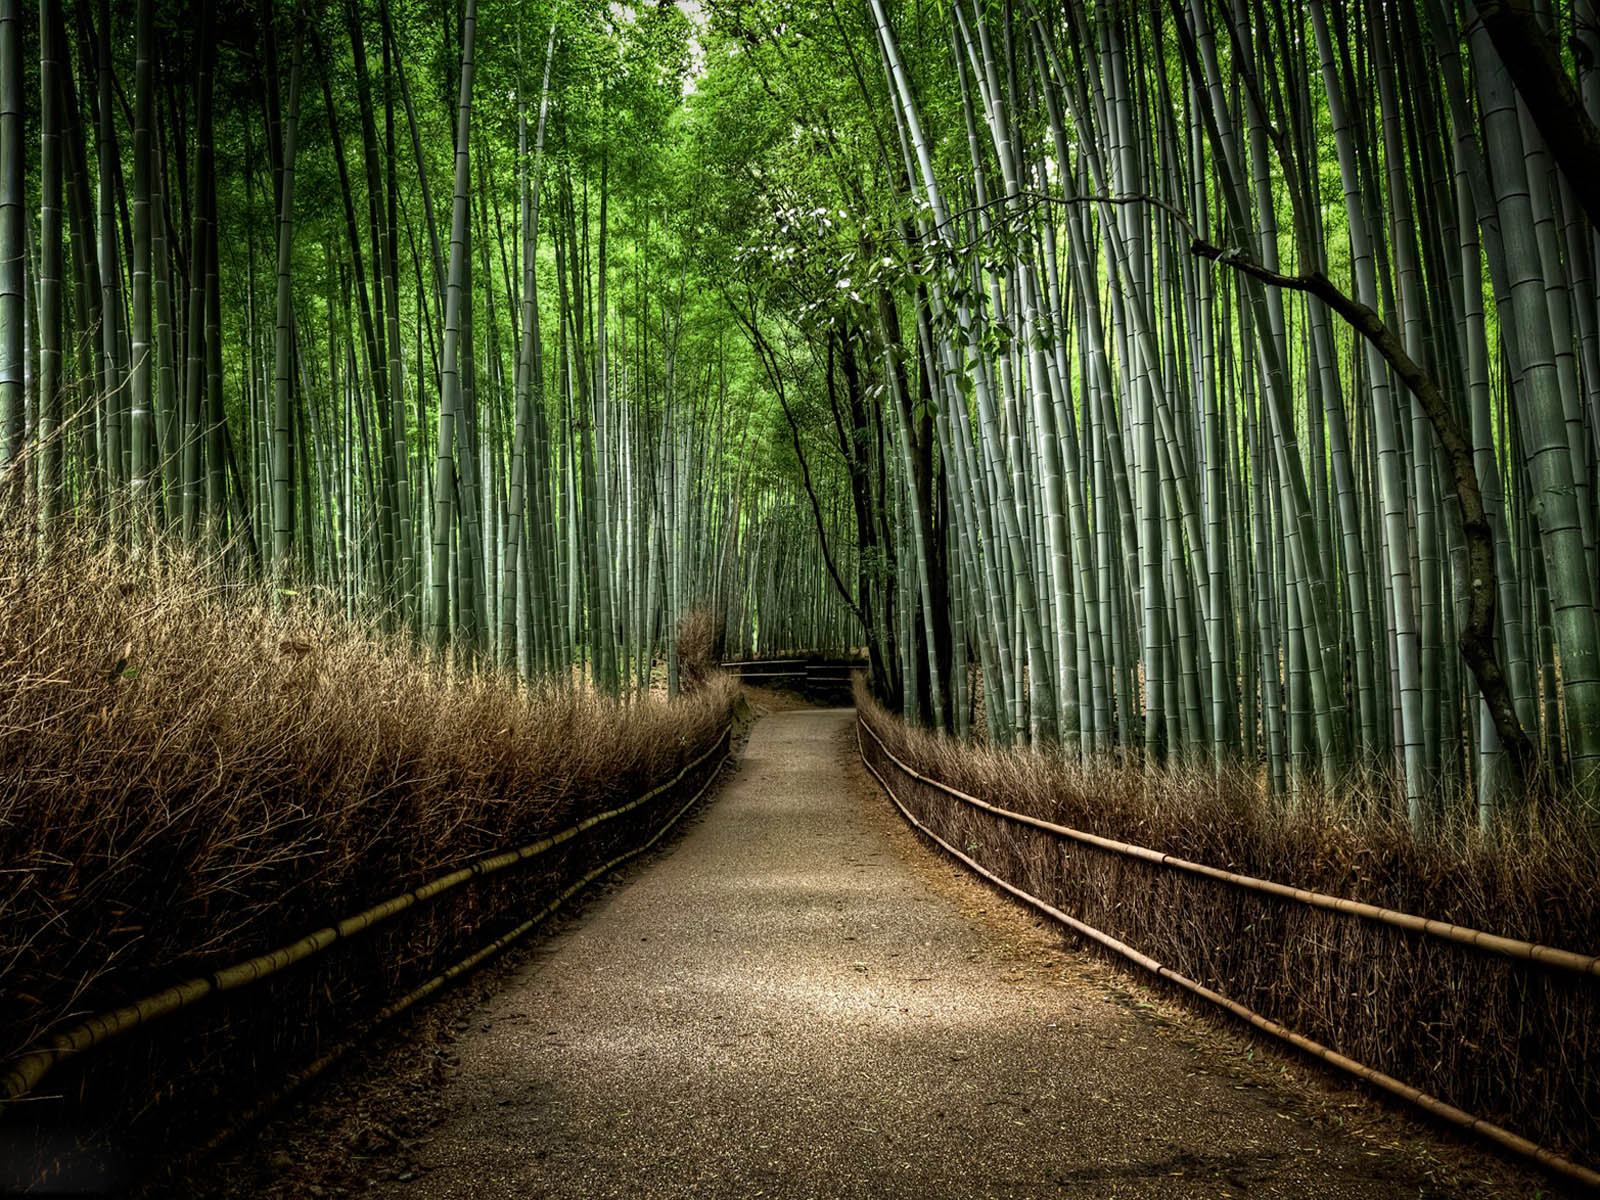 Home Design Software Free Cnet Wallpapers Bamboo Forest Wallpapers